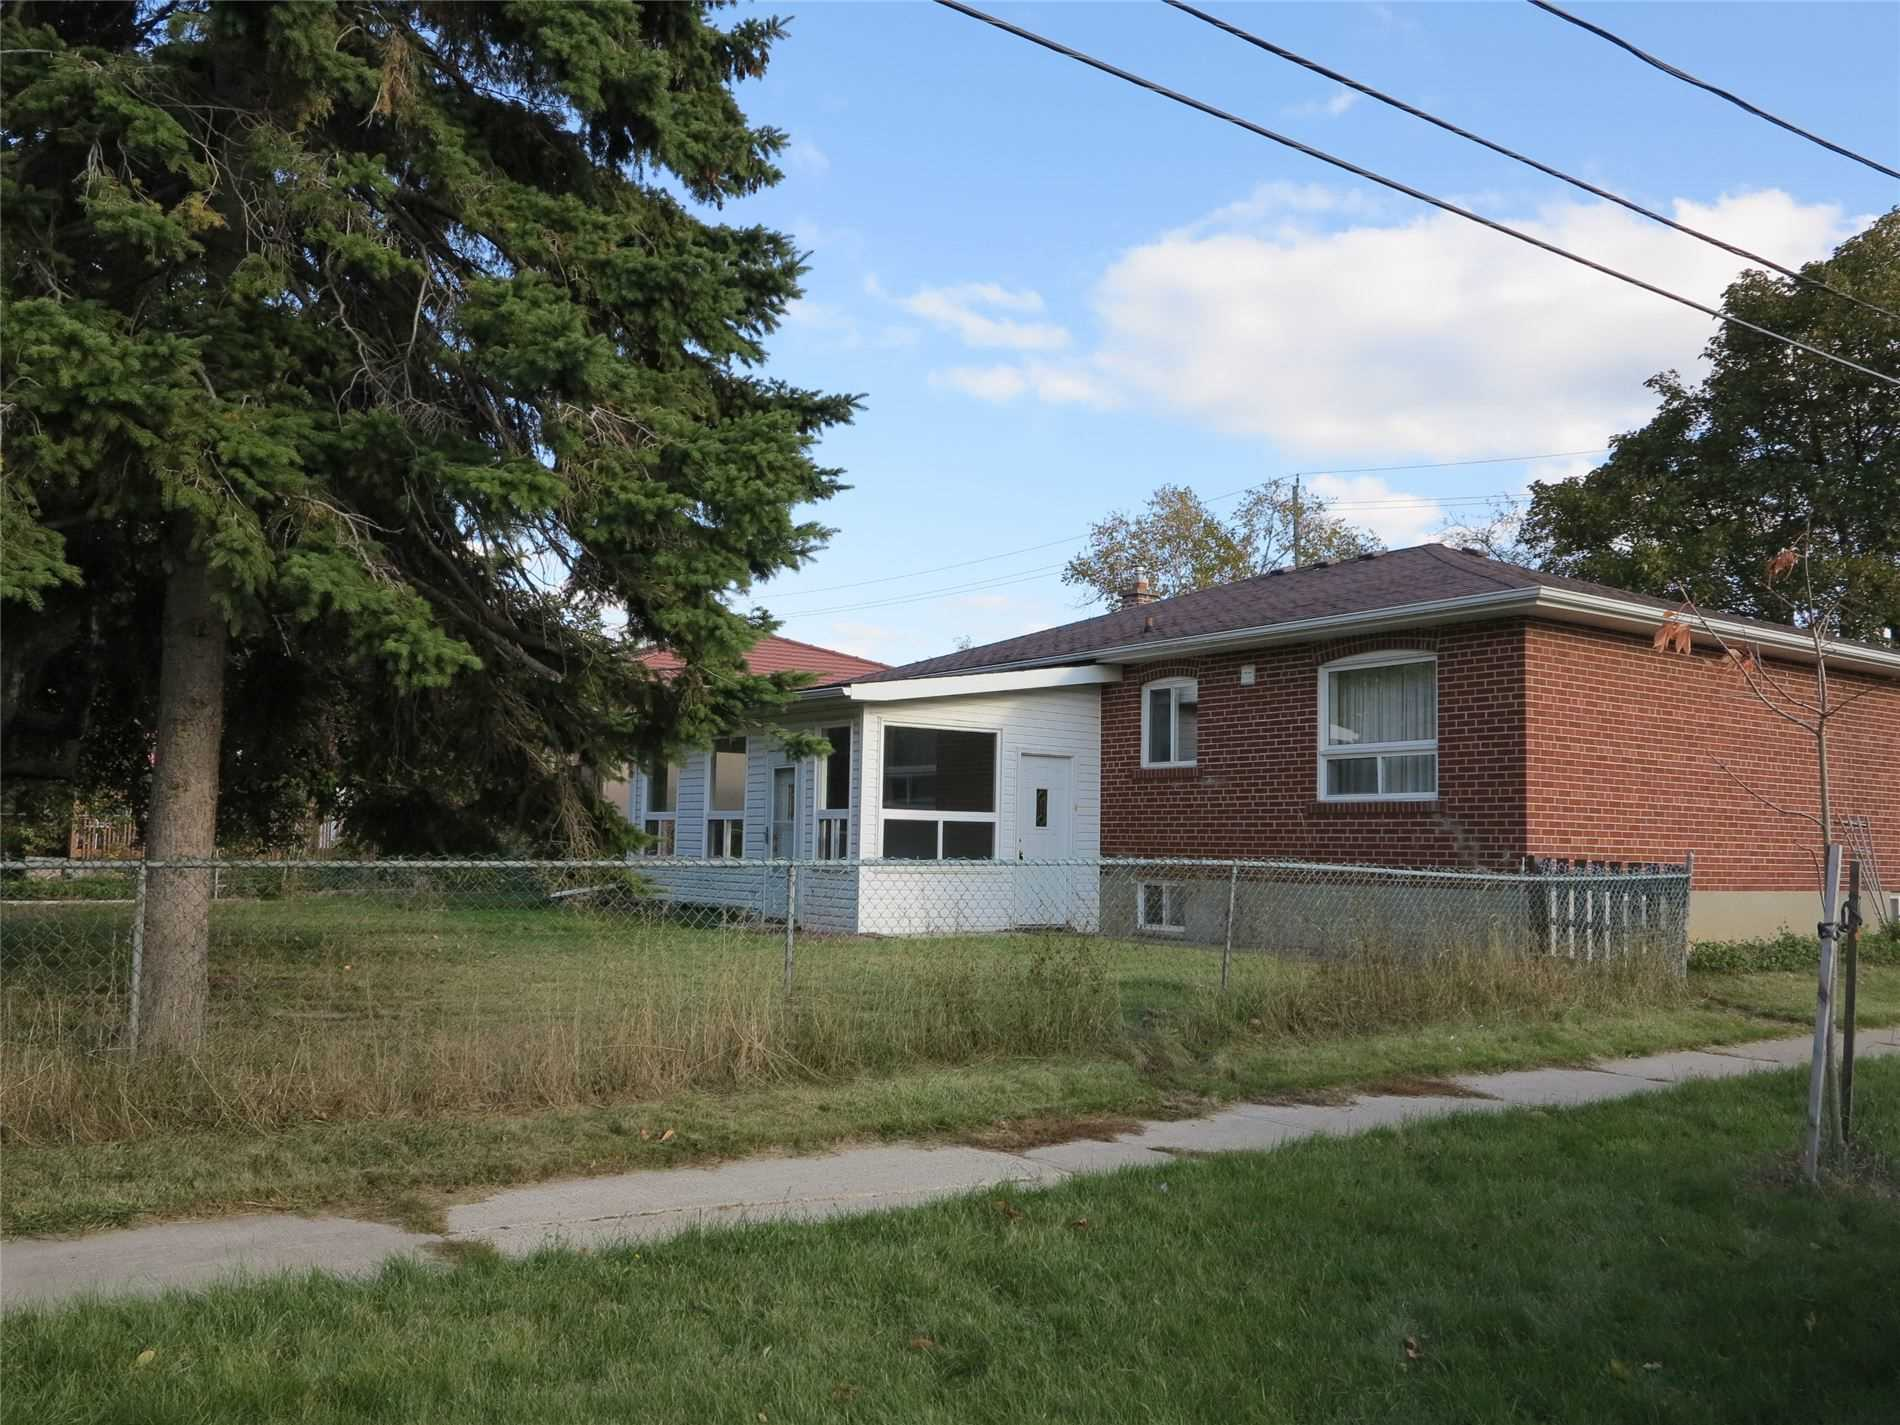 Image 23 of 30 showing inside of 3 Bedroom Detached Bungalow for Lease at 456 Drewry Ave, Toronto M2R2K7